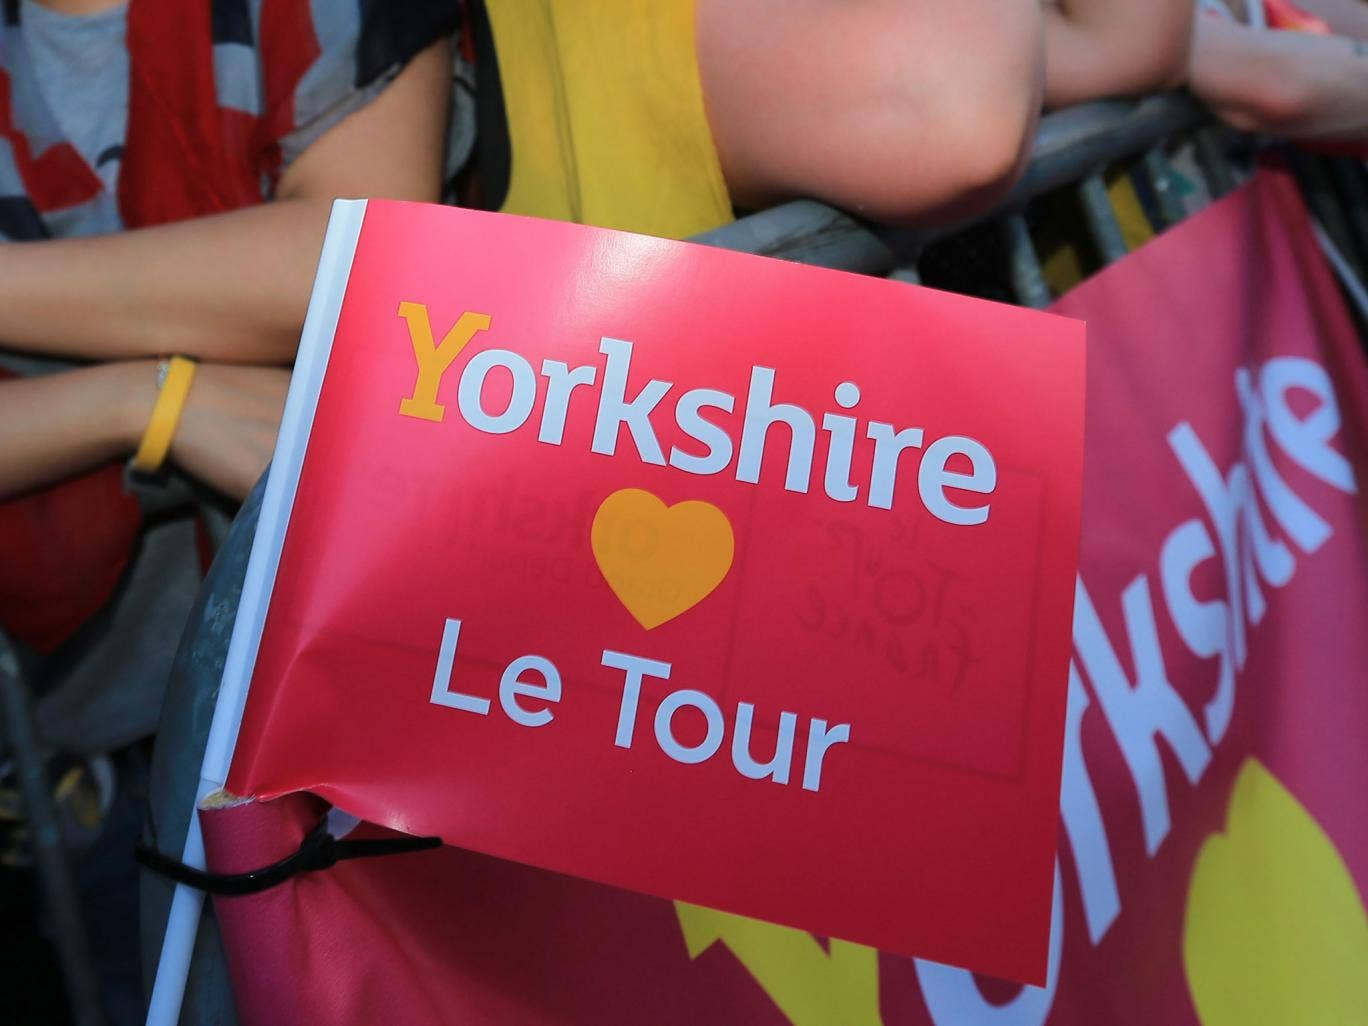 The Tour will begin in Yorkshire for the first time in its history